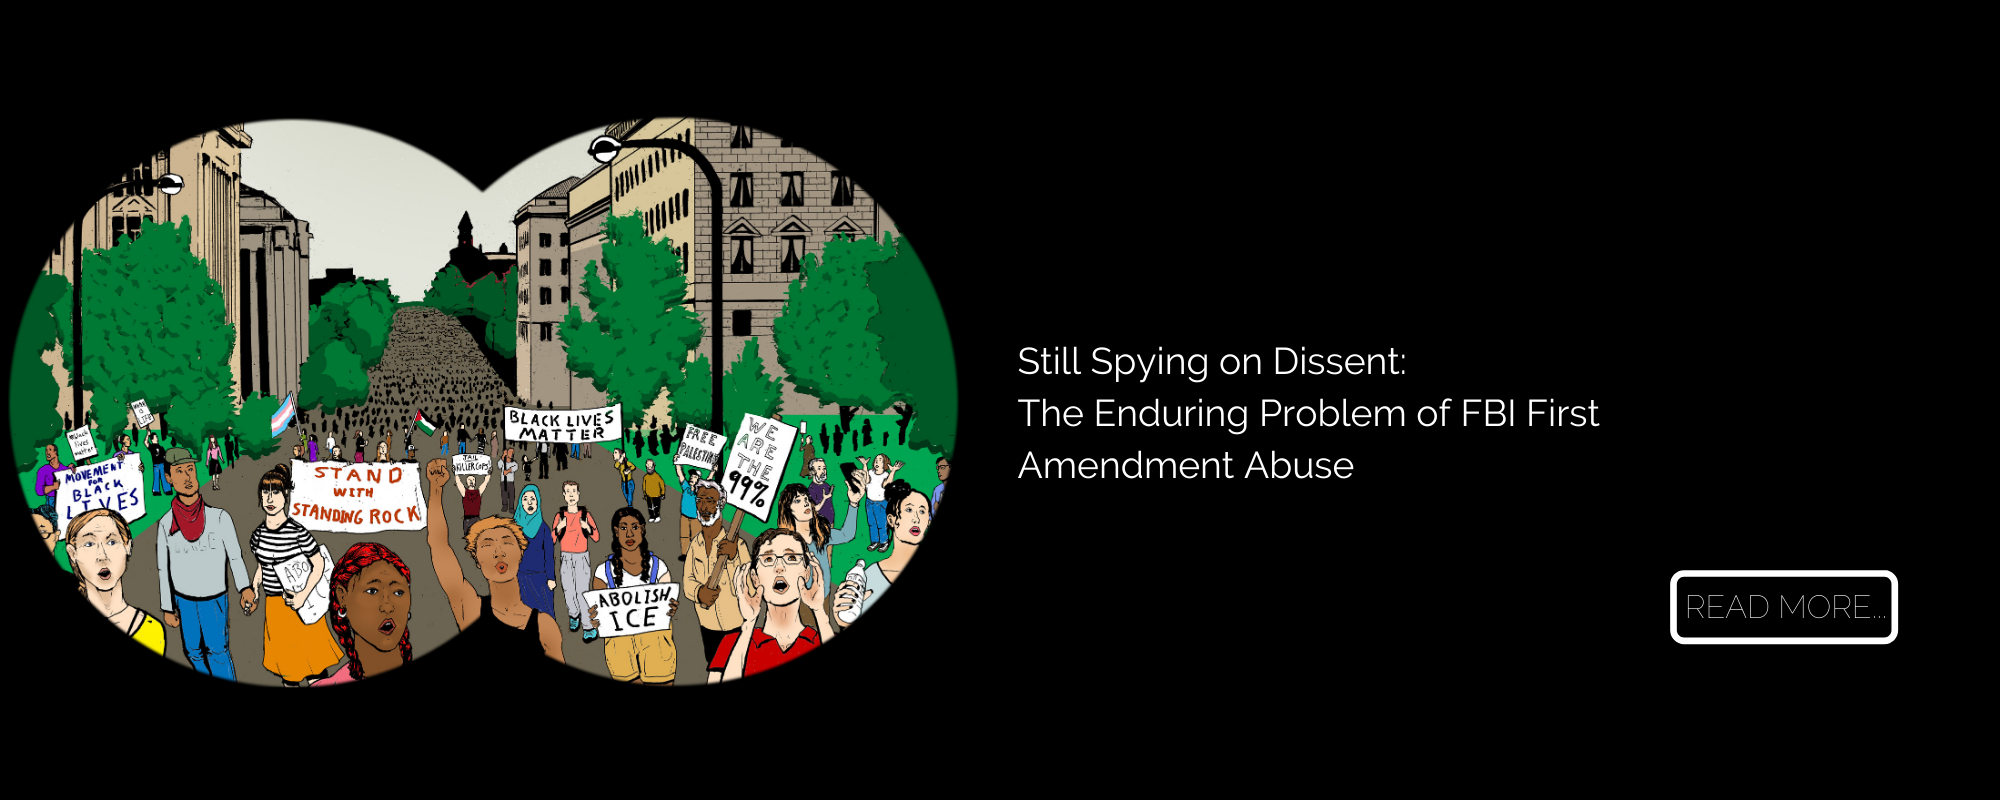 Still Spying on Dissent_ The Enduring Problem of FBI First Amendment Abuse (1)